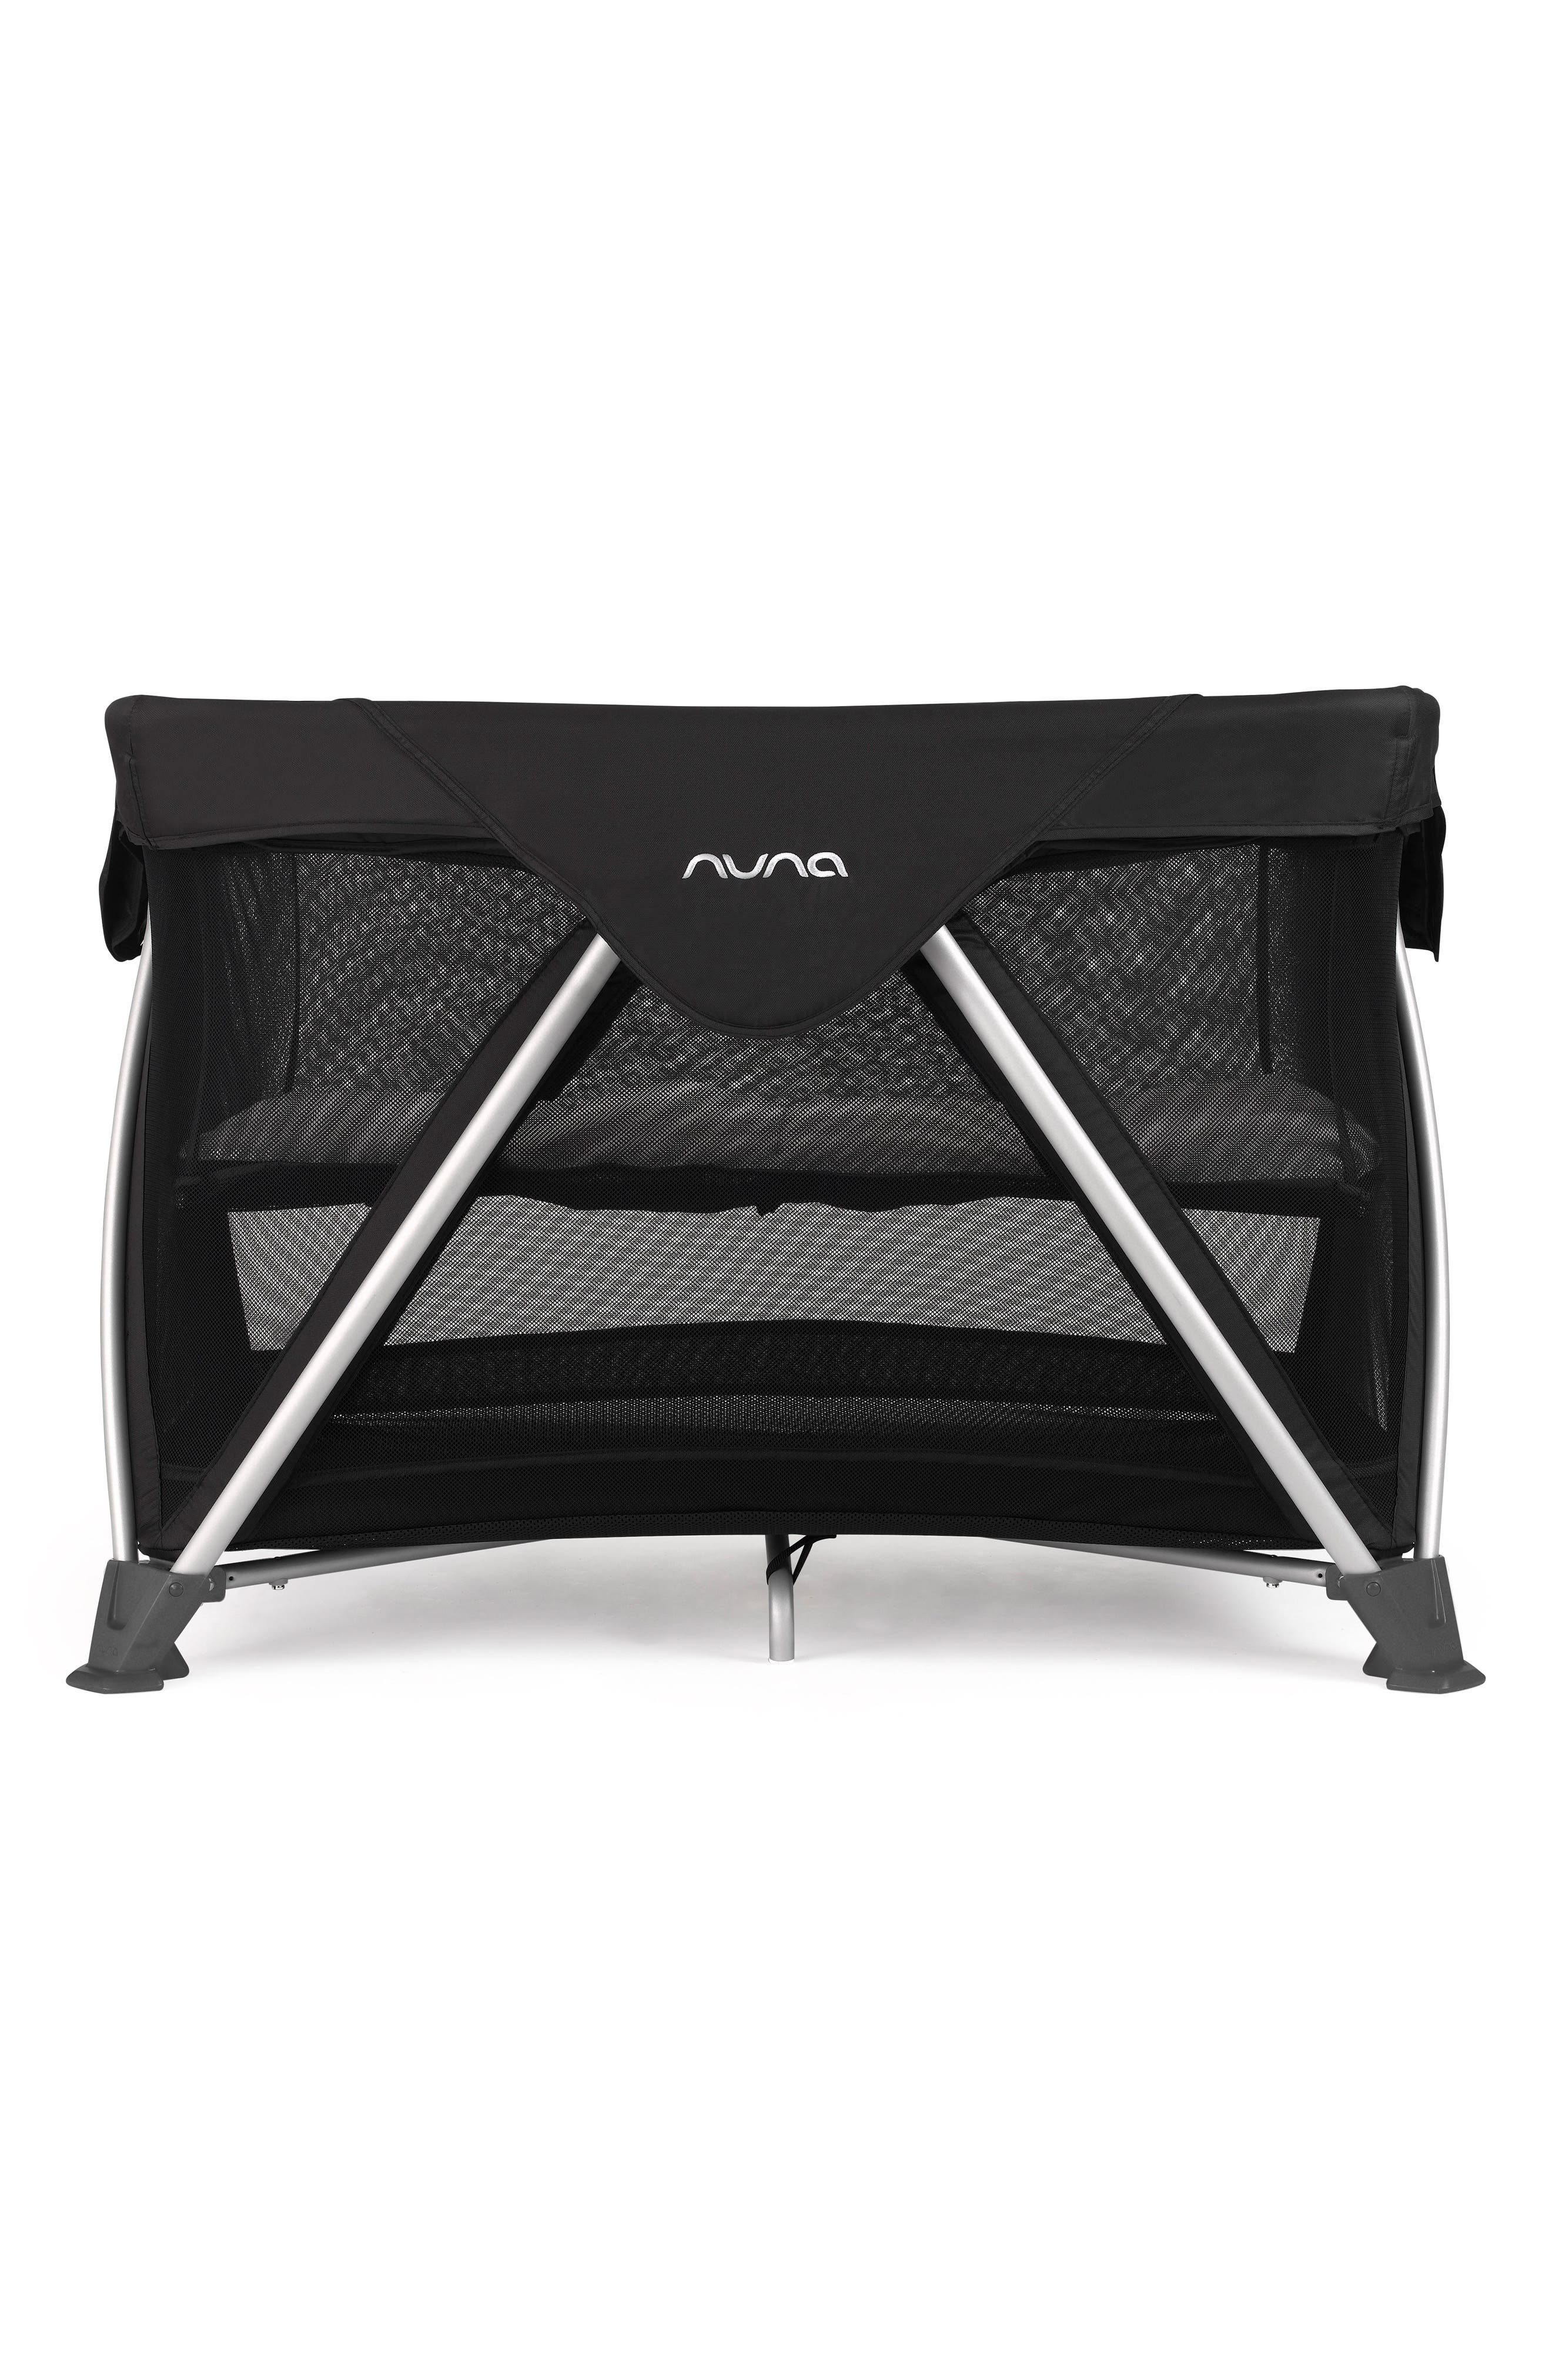 SENA<sup>™</sup> Mini Aire Travel Crib,                             Main thumbnail 1, color,                             NIGHT